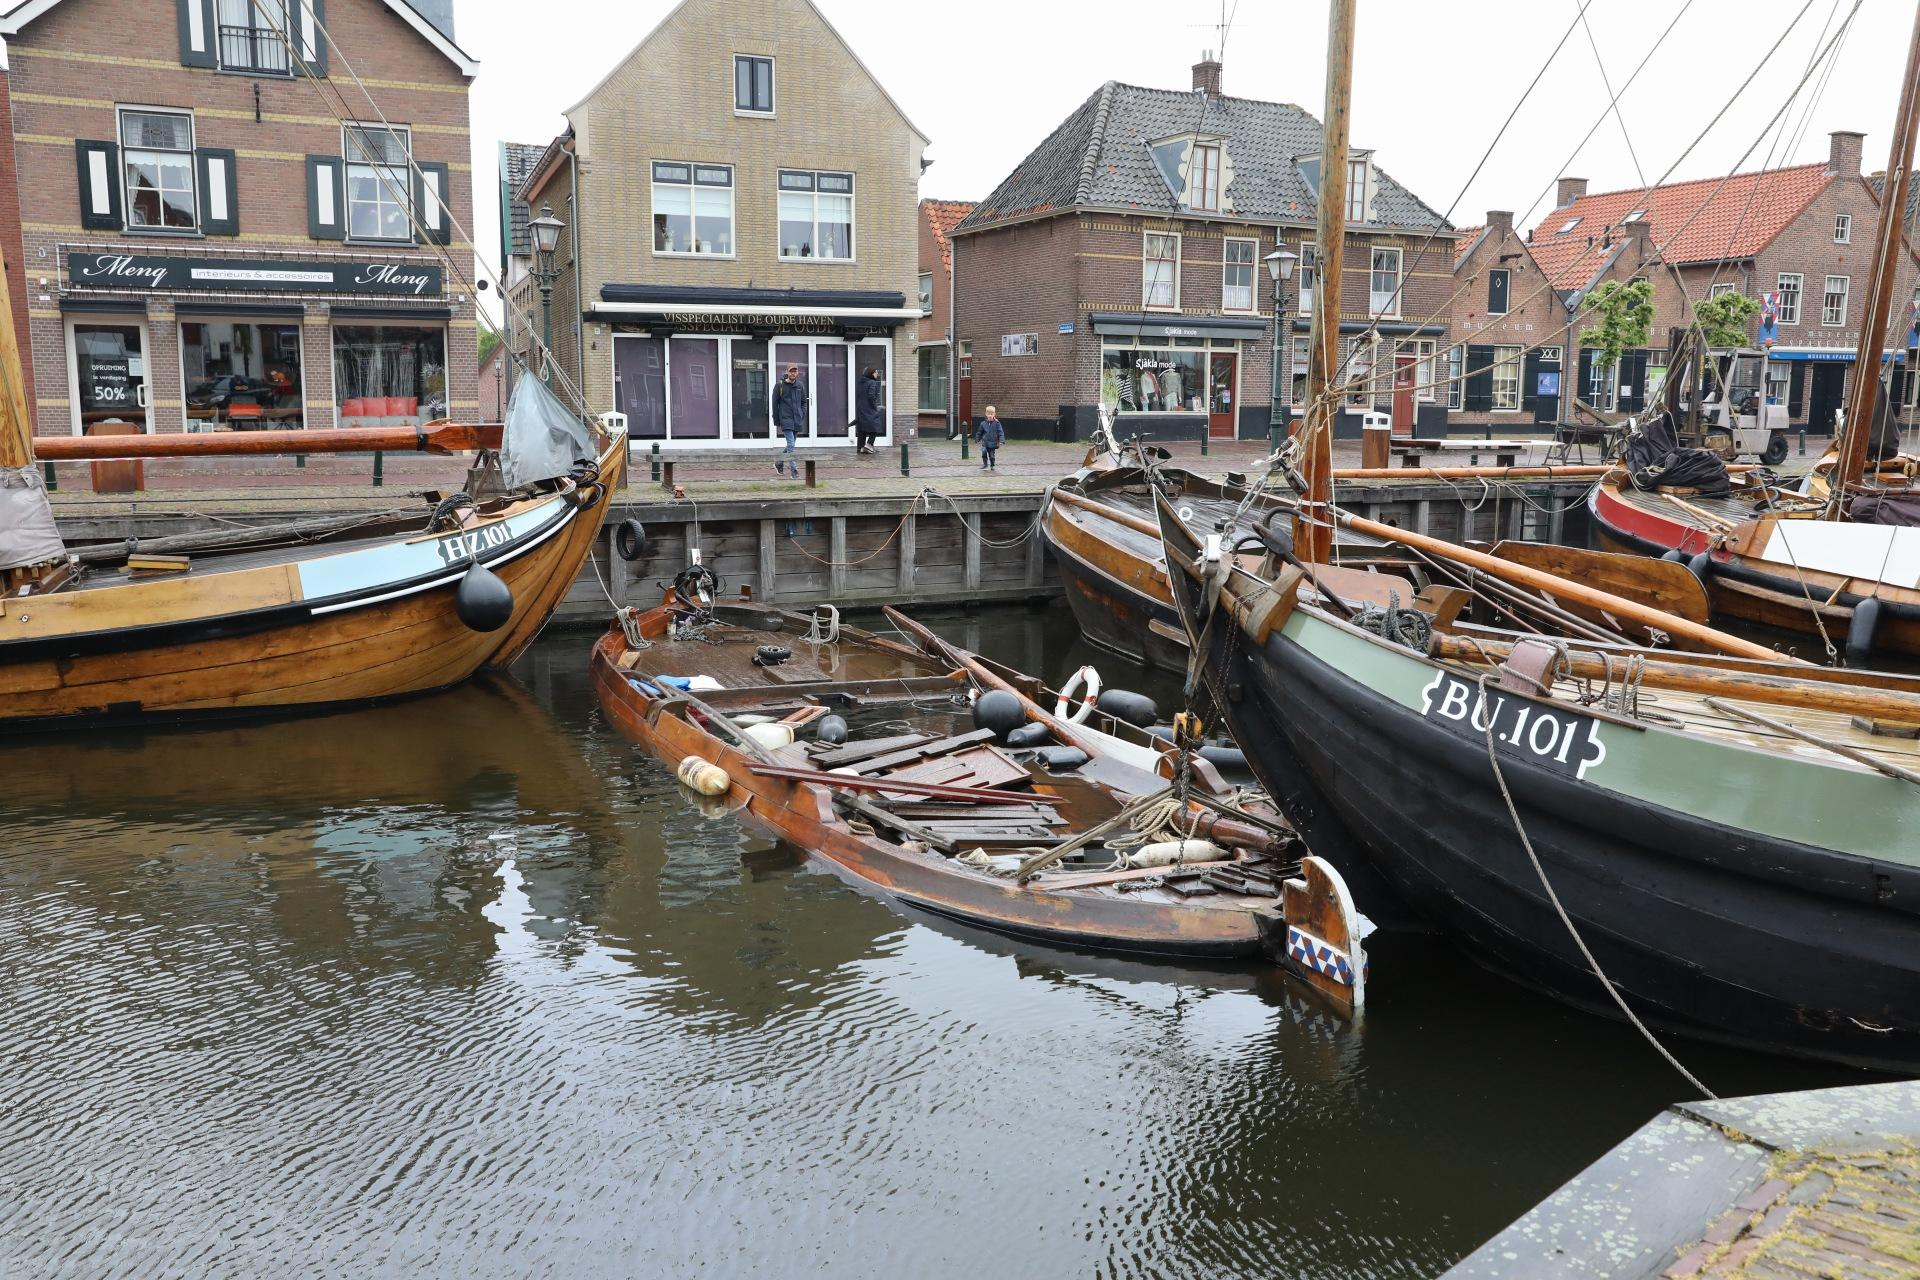 Historische botter gezonken in centrum van Spakenburg